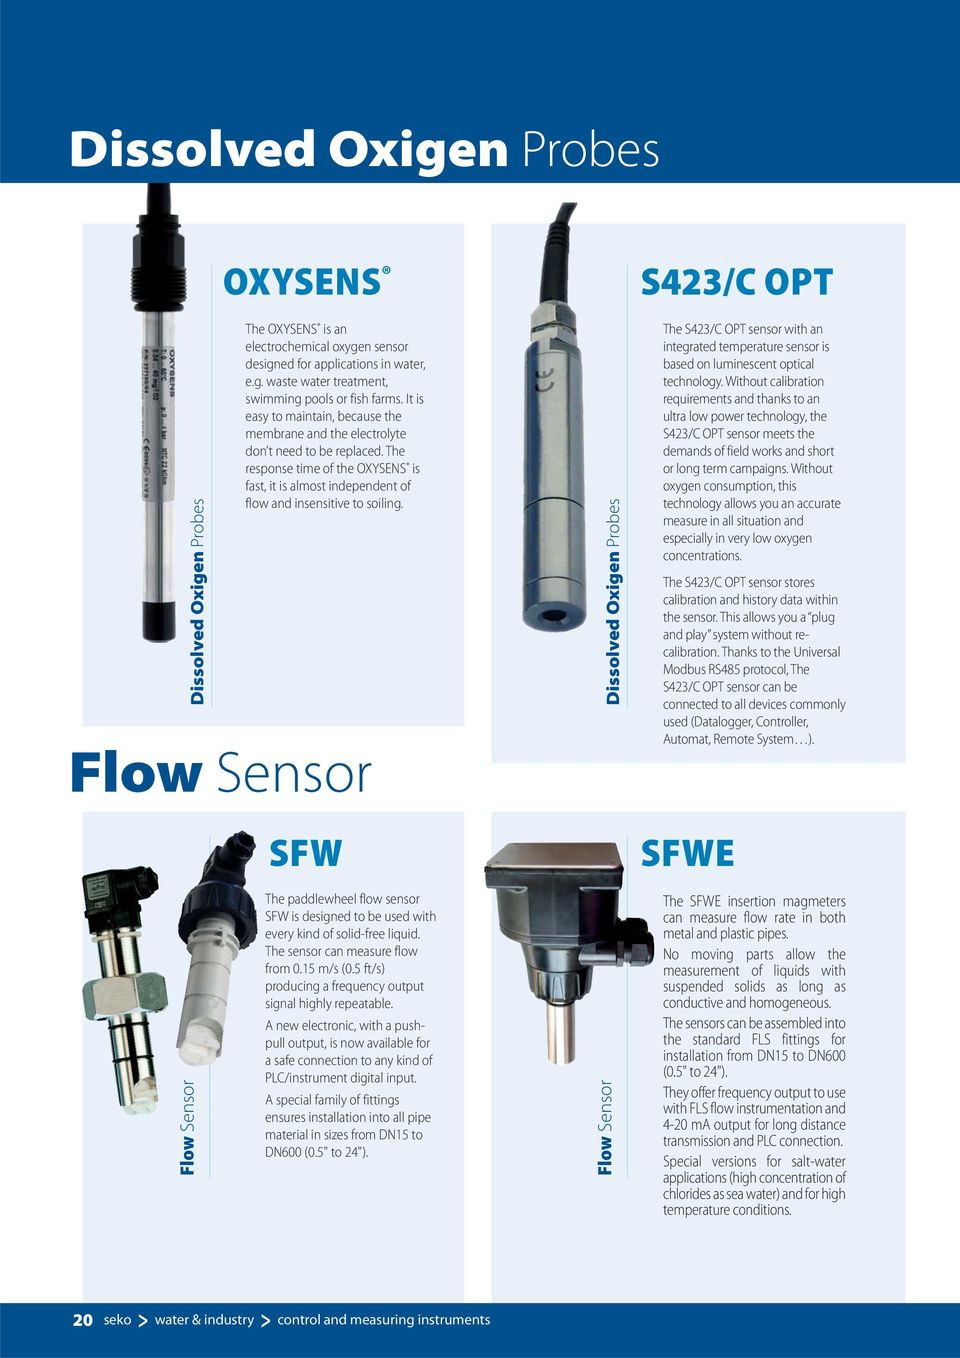 Flow Sensor SFW Dissolved Oxigen Probes S423/C OPT The S423/C OPT sensor with an integrated temperature sensor is based on luminescent optical technology.